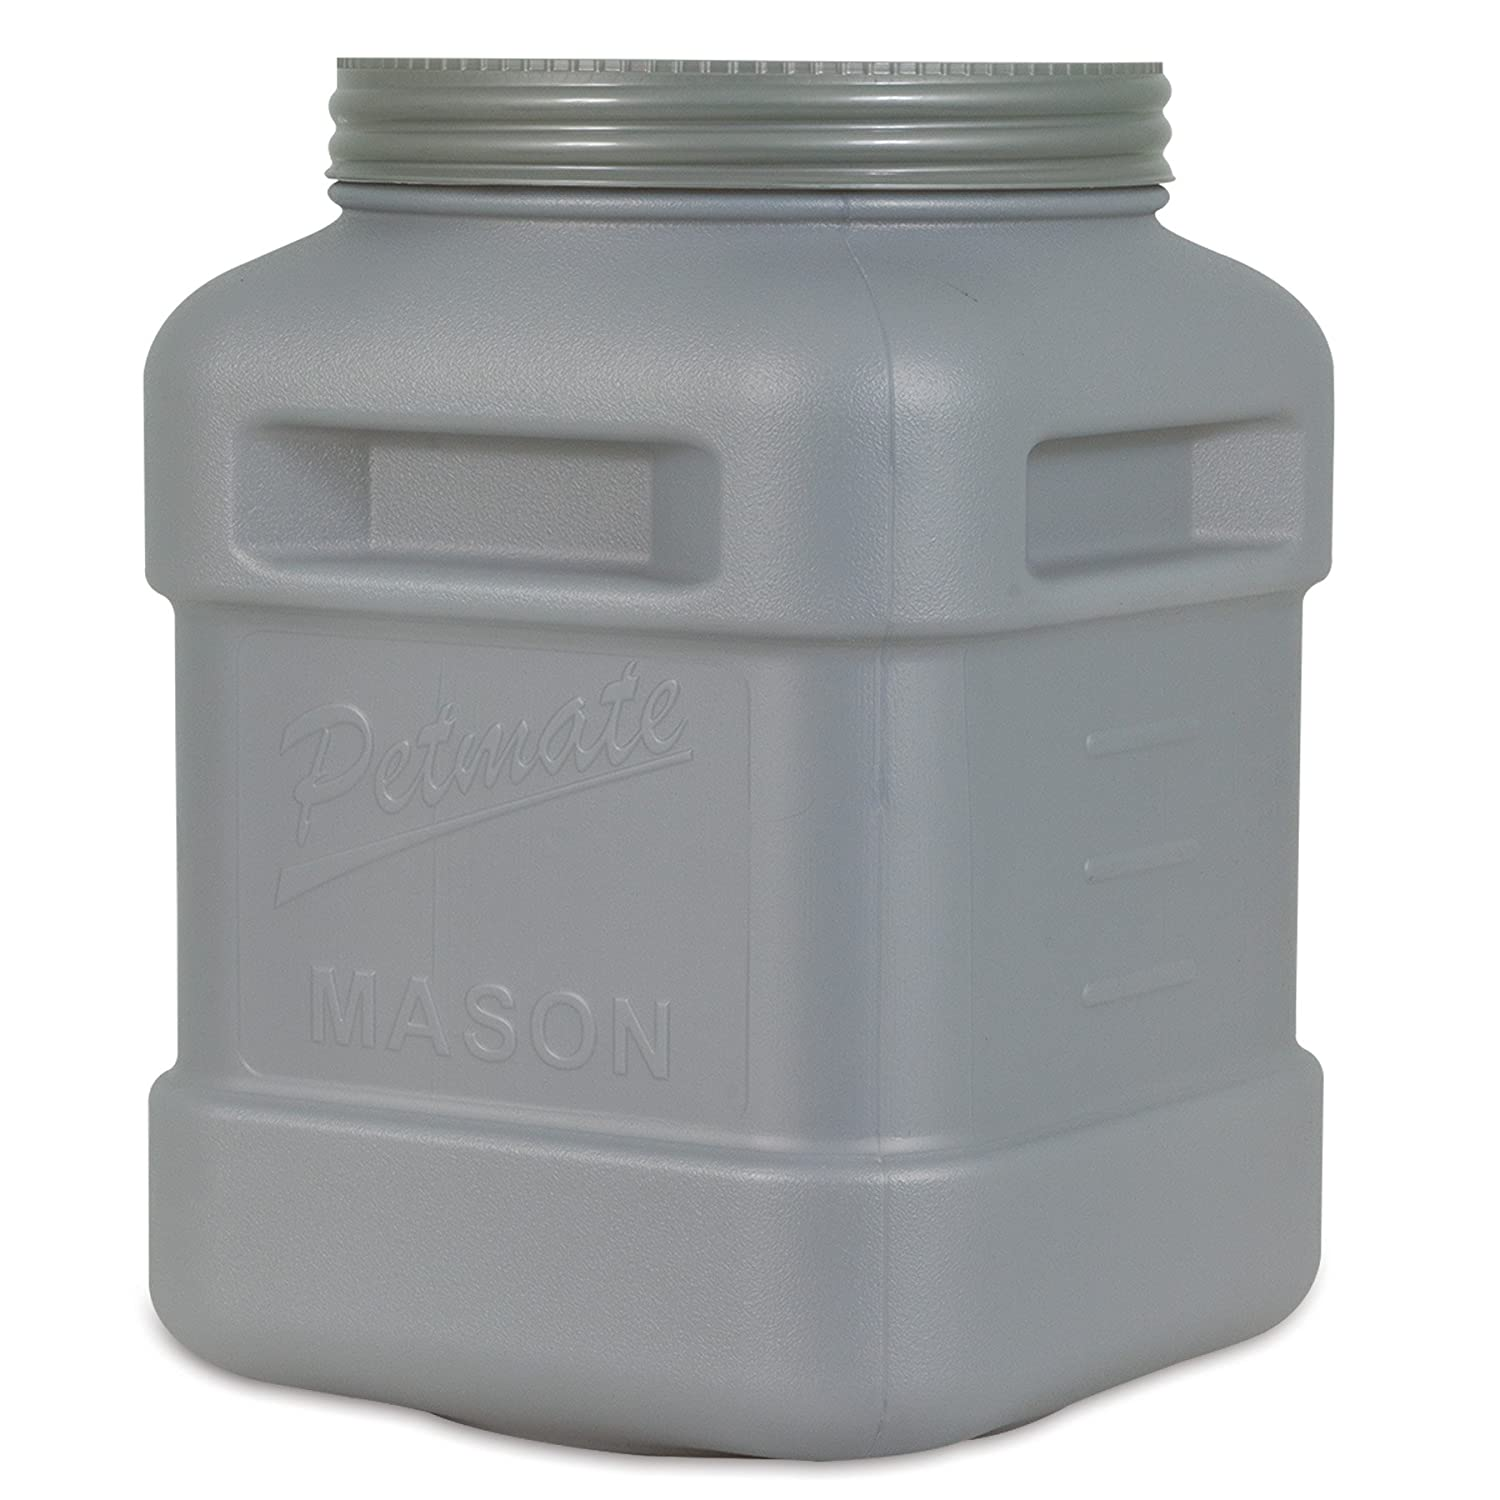 40-Pound Petmate Mason Jar Food Storage Upto 40-Pound